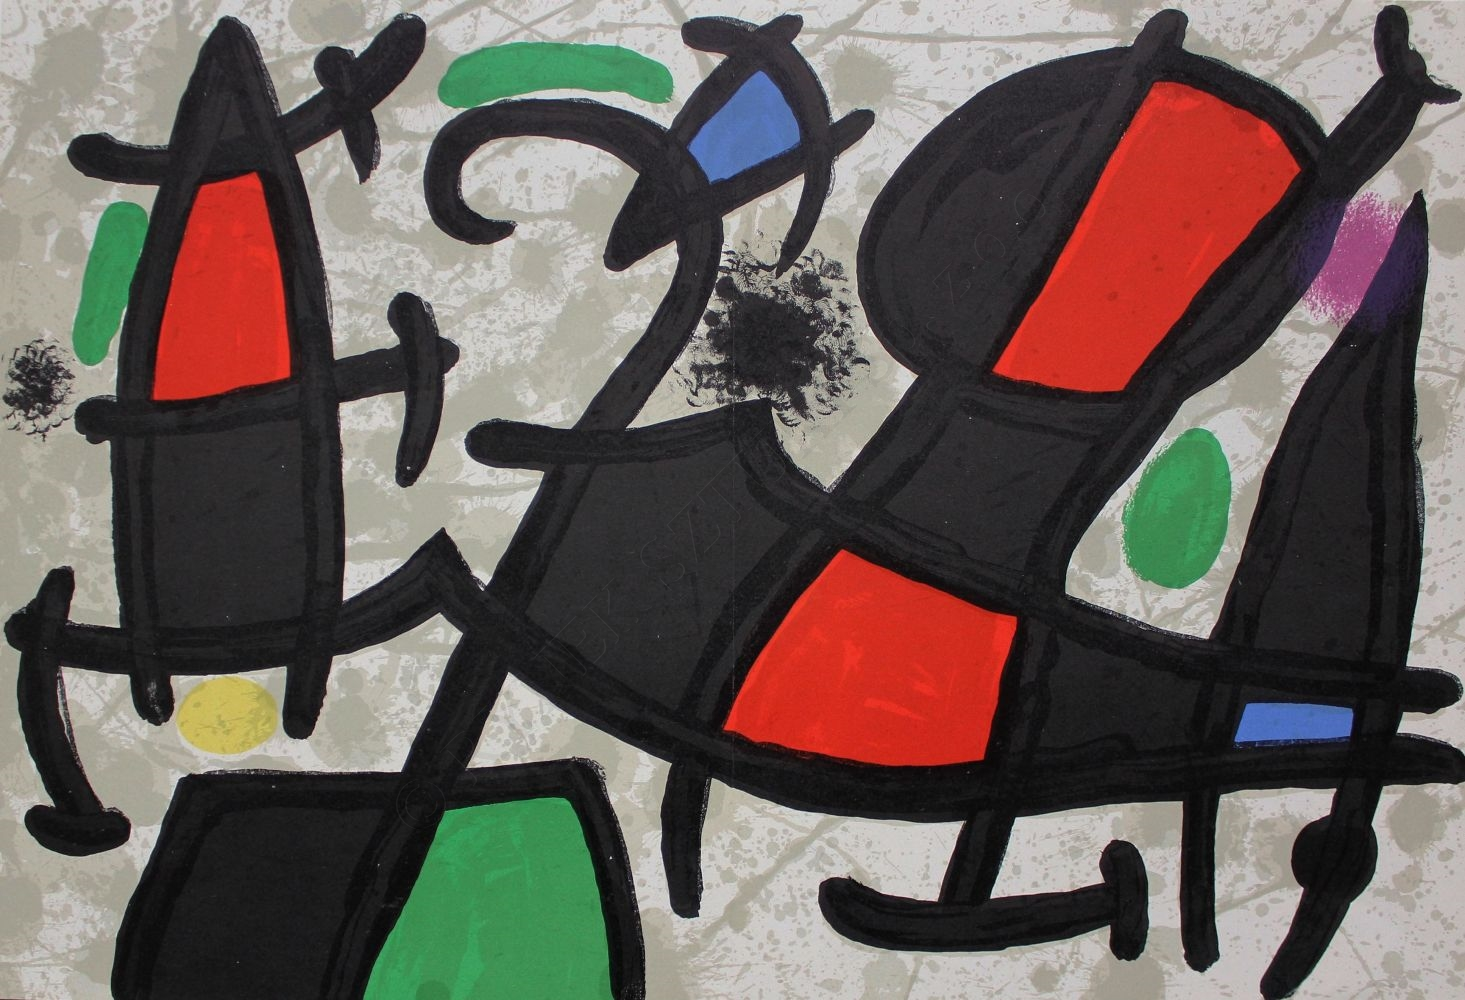 Miró Joan, Sculptures [216-40]